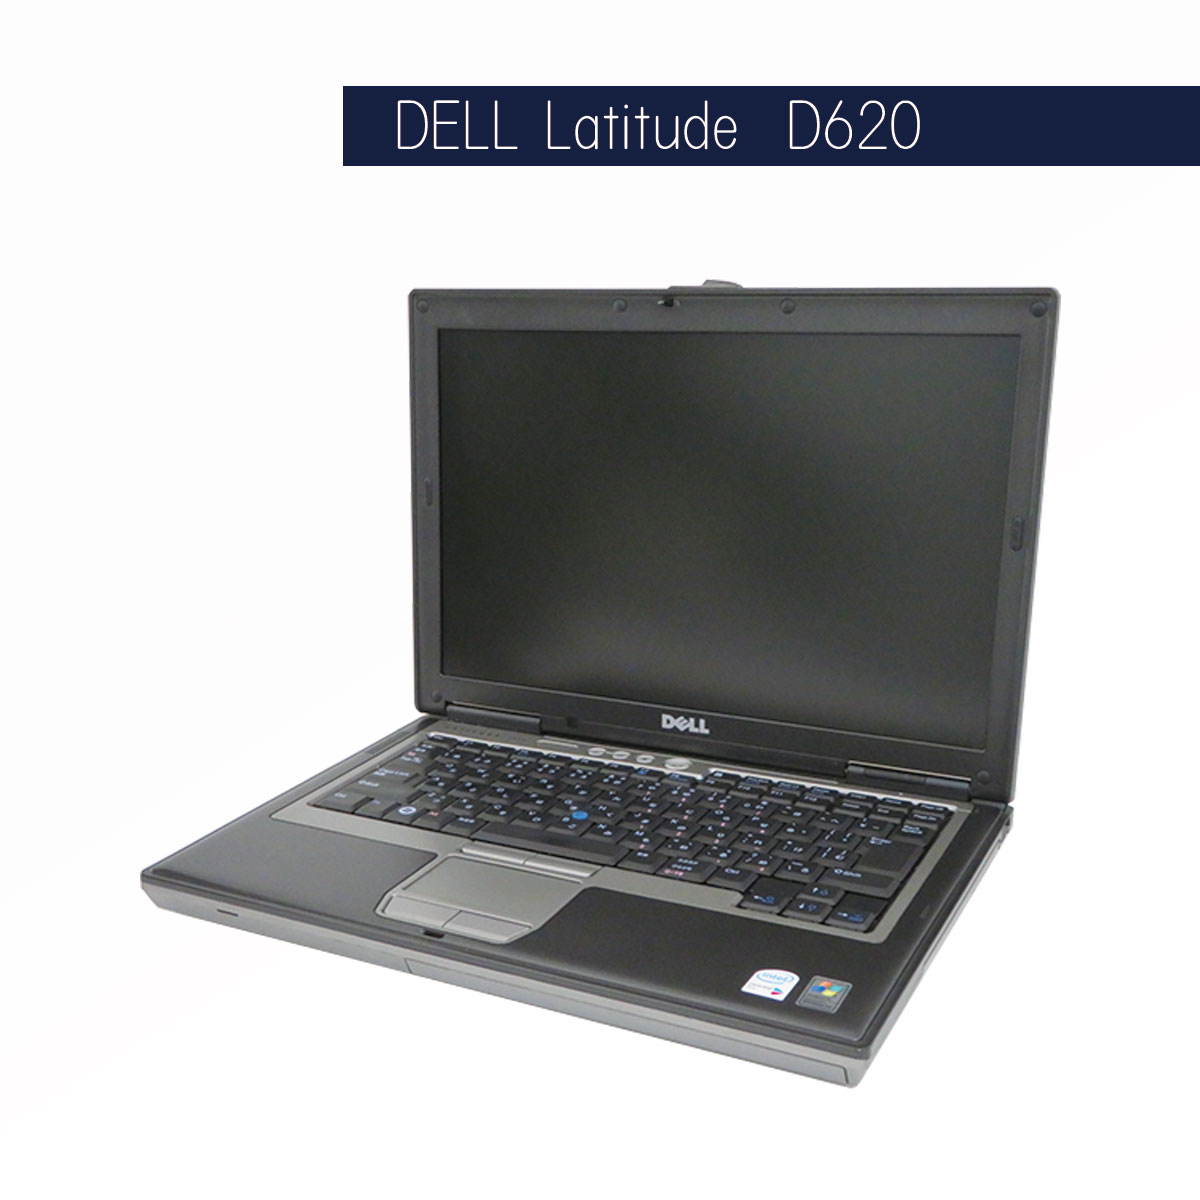 DELL Latitude D620 Core2Duo T5500 1GB 80GB(WinXP) WLAN